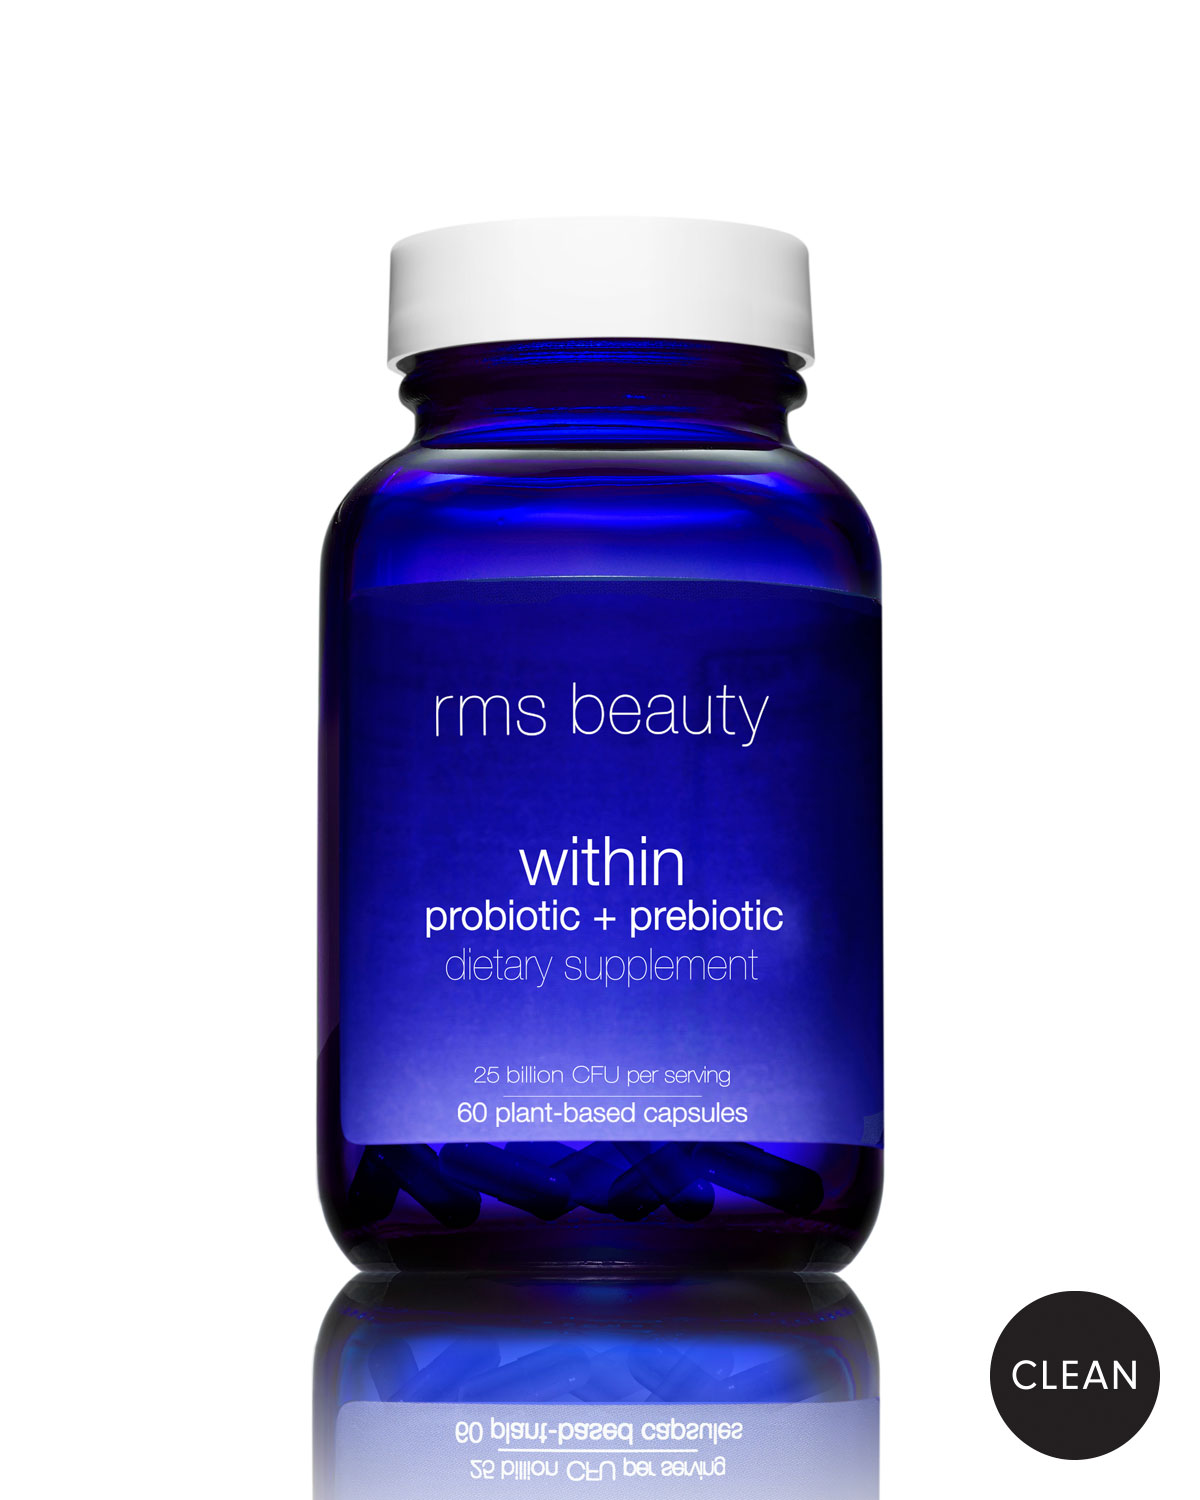 Rms Beauty Beauty Within Probiotic + Prebiotic Dietary Supplement, 60 Capsules